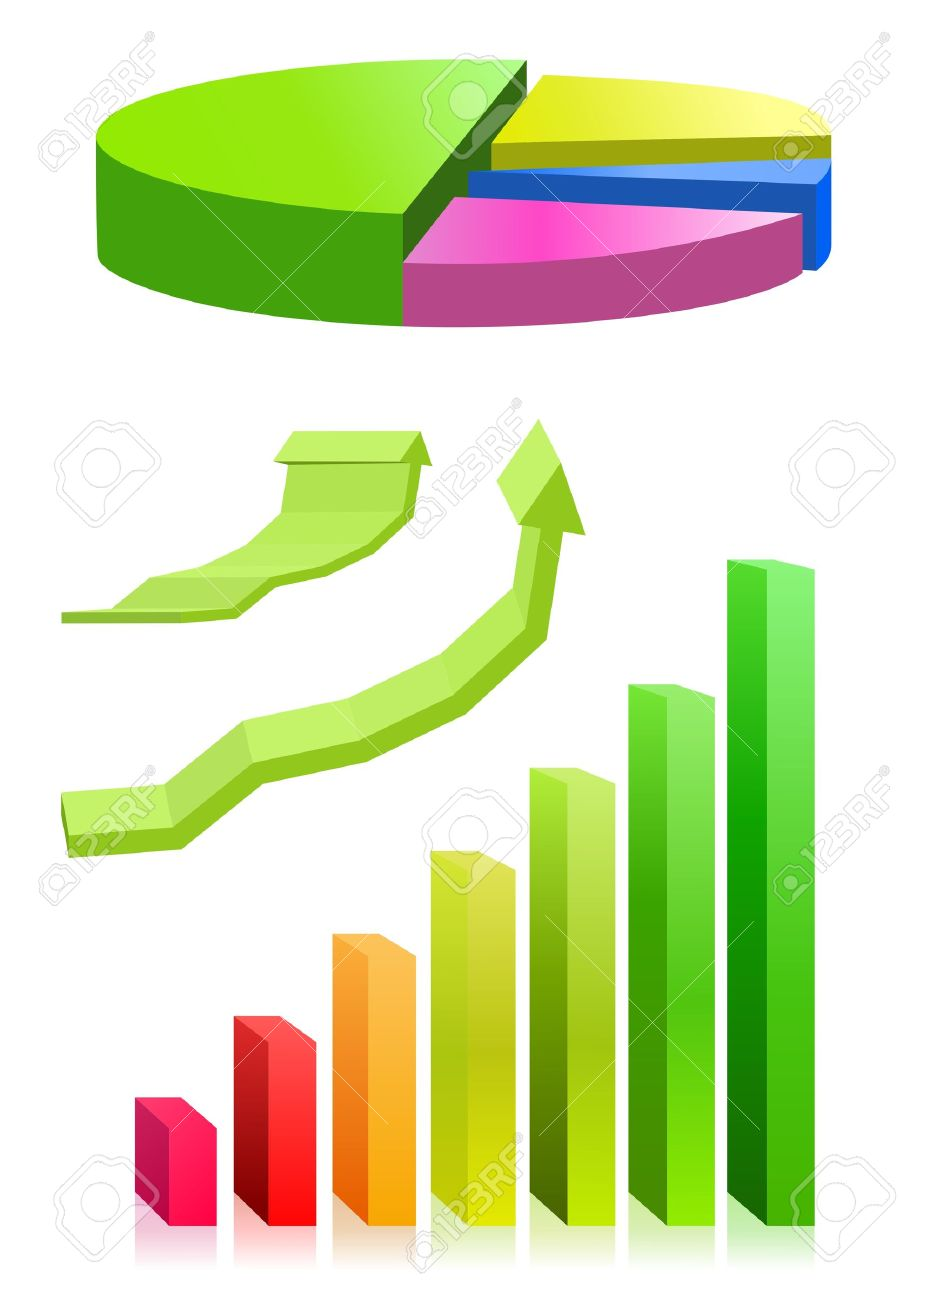 Pie chart and bar graph royalty free cliparts vectors and stock pie chart and bar graph stock vector 11889862 nvjuhfo Gallery